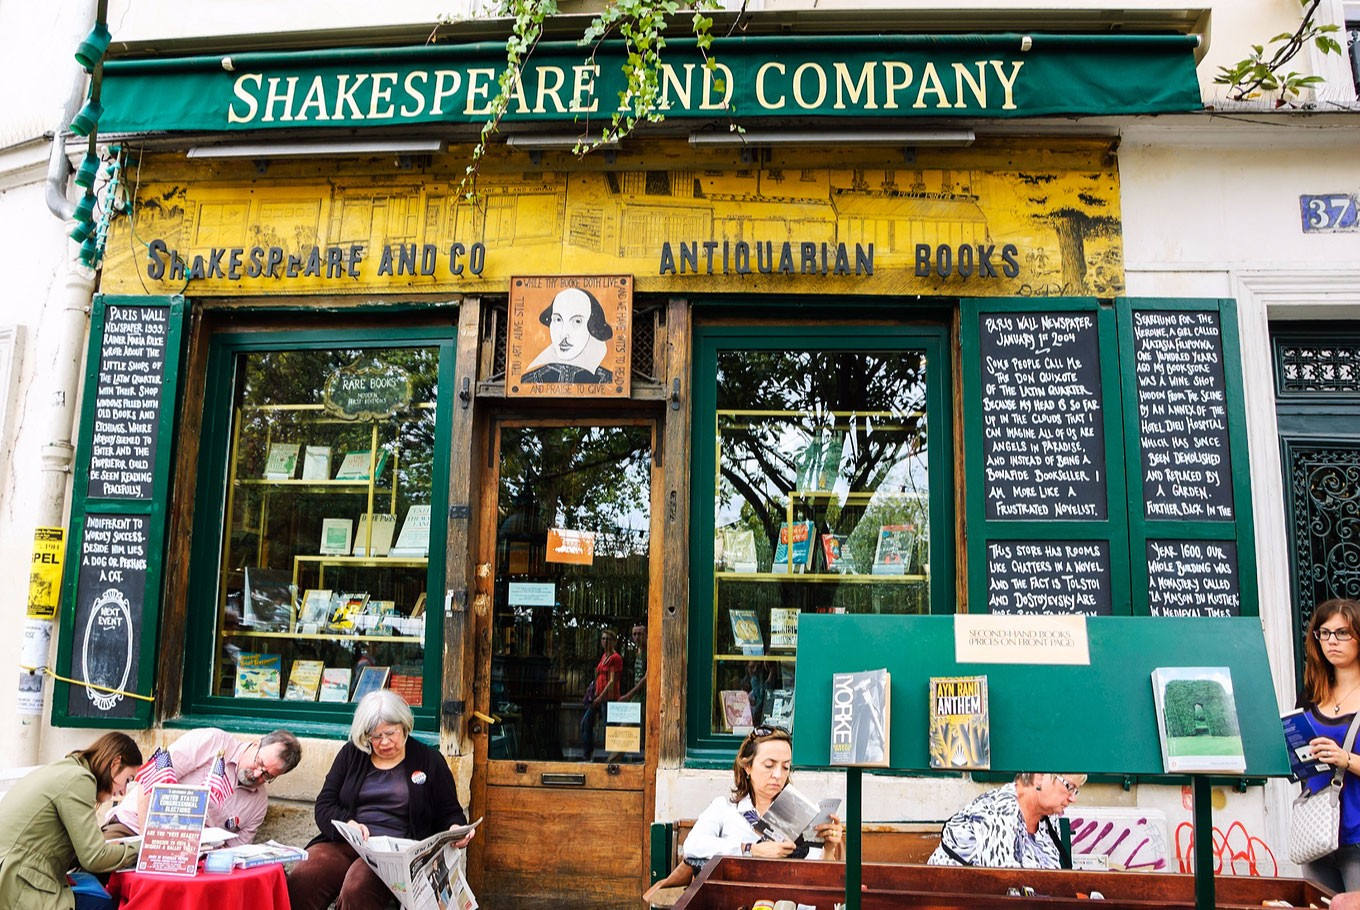 A day in the legendary Shakespeare and Company bookstore